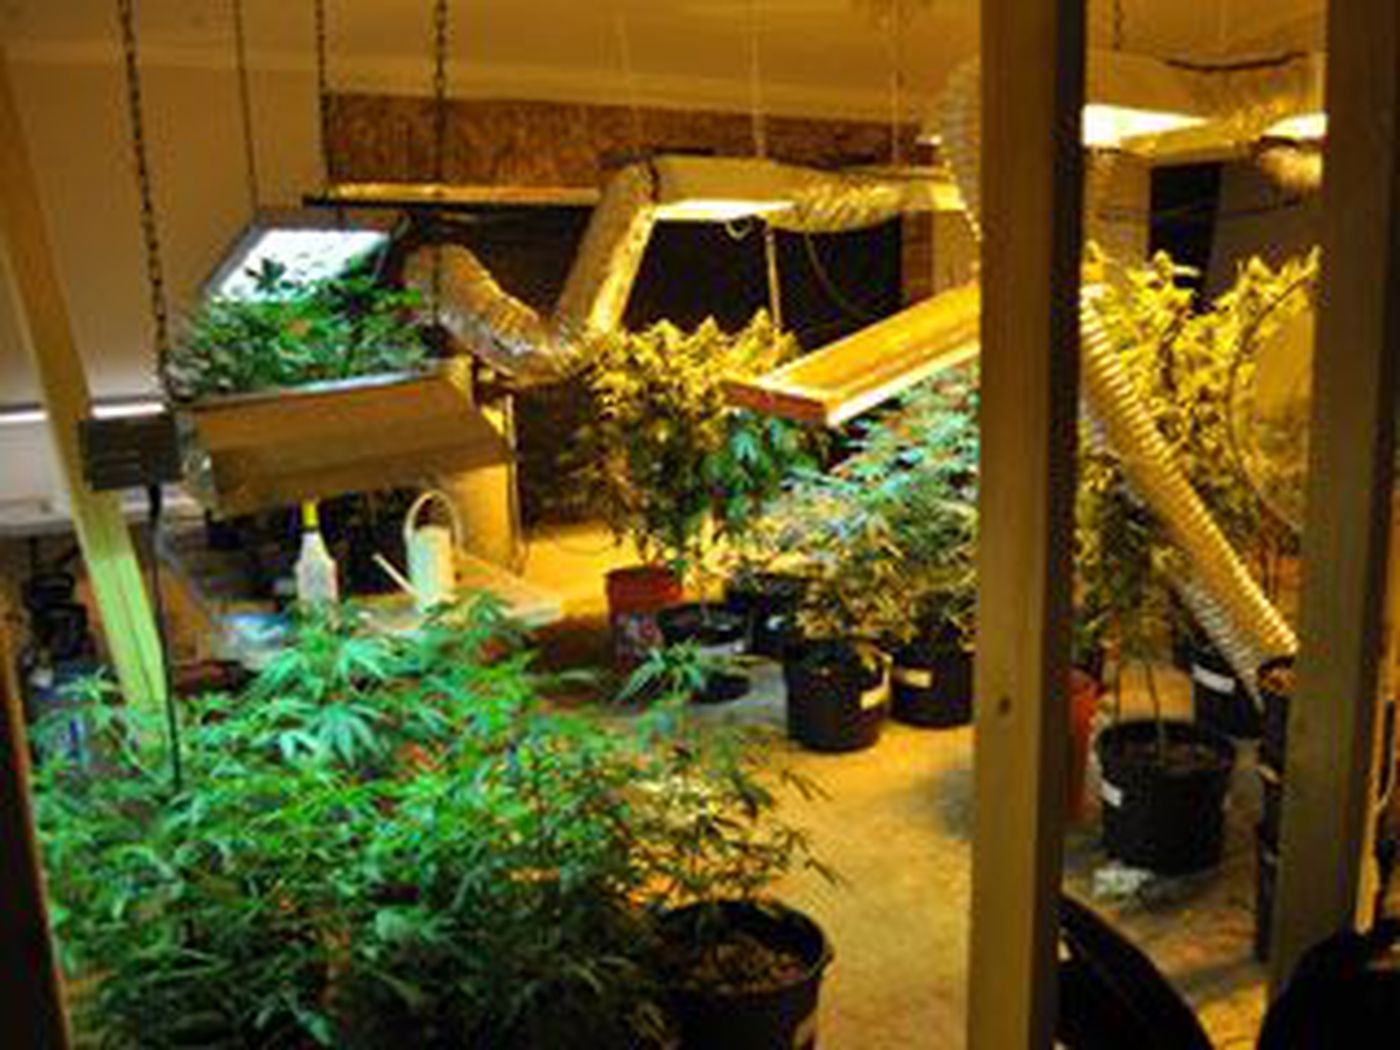 Detectives discovered a large-scale, highly sophisticated hydroponic  marijuana growing operation in the basement